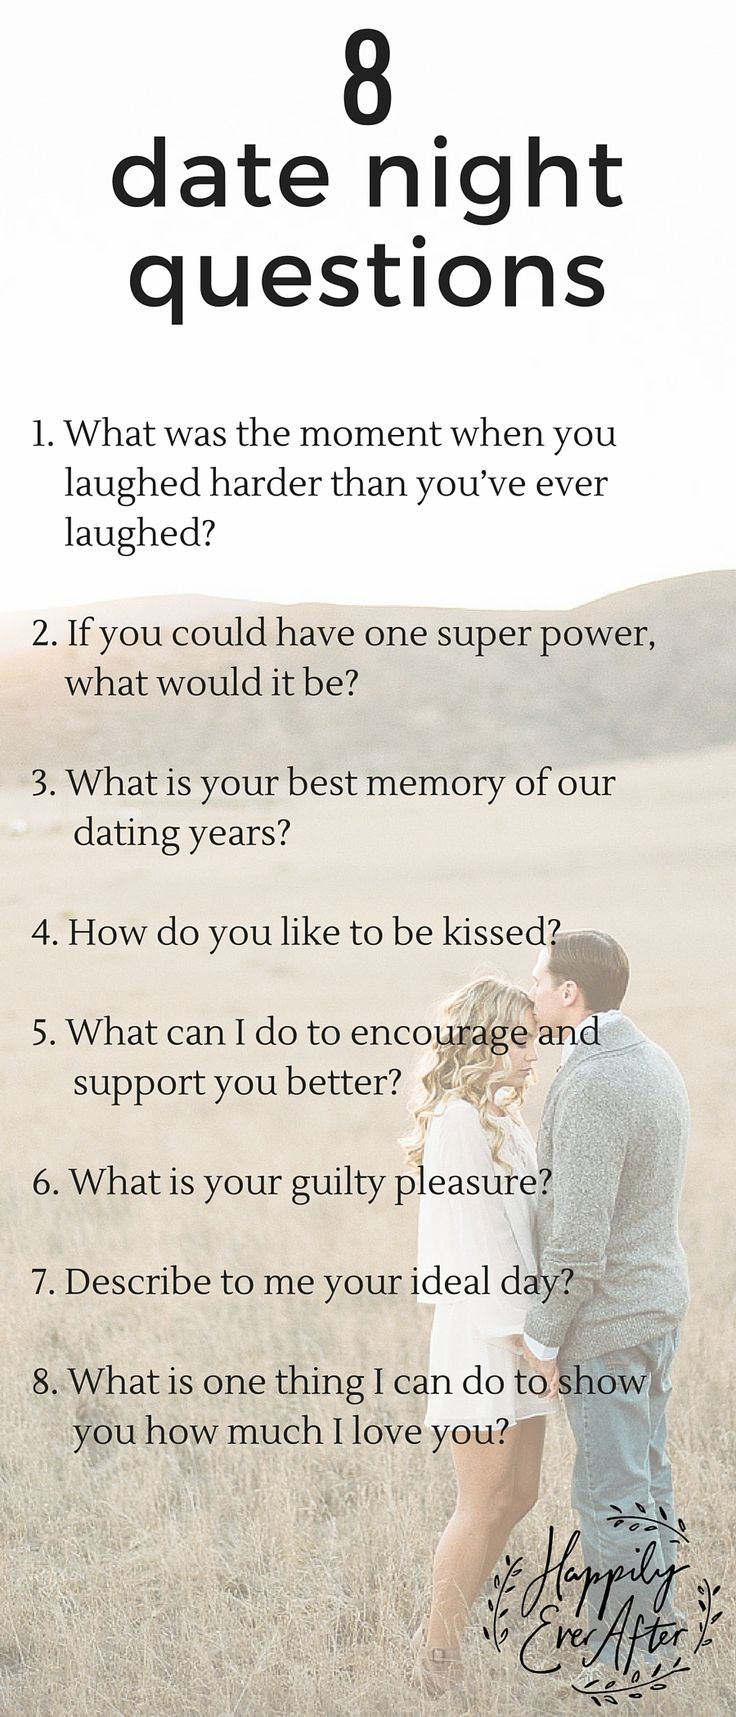 Here Are 8 Questions To Ask Each Other On Your Next Date Night Asking Open